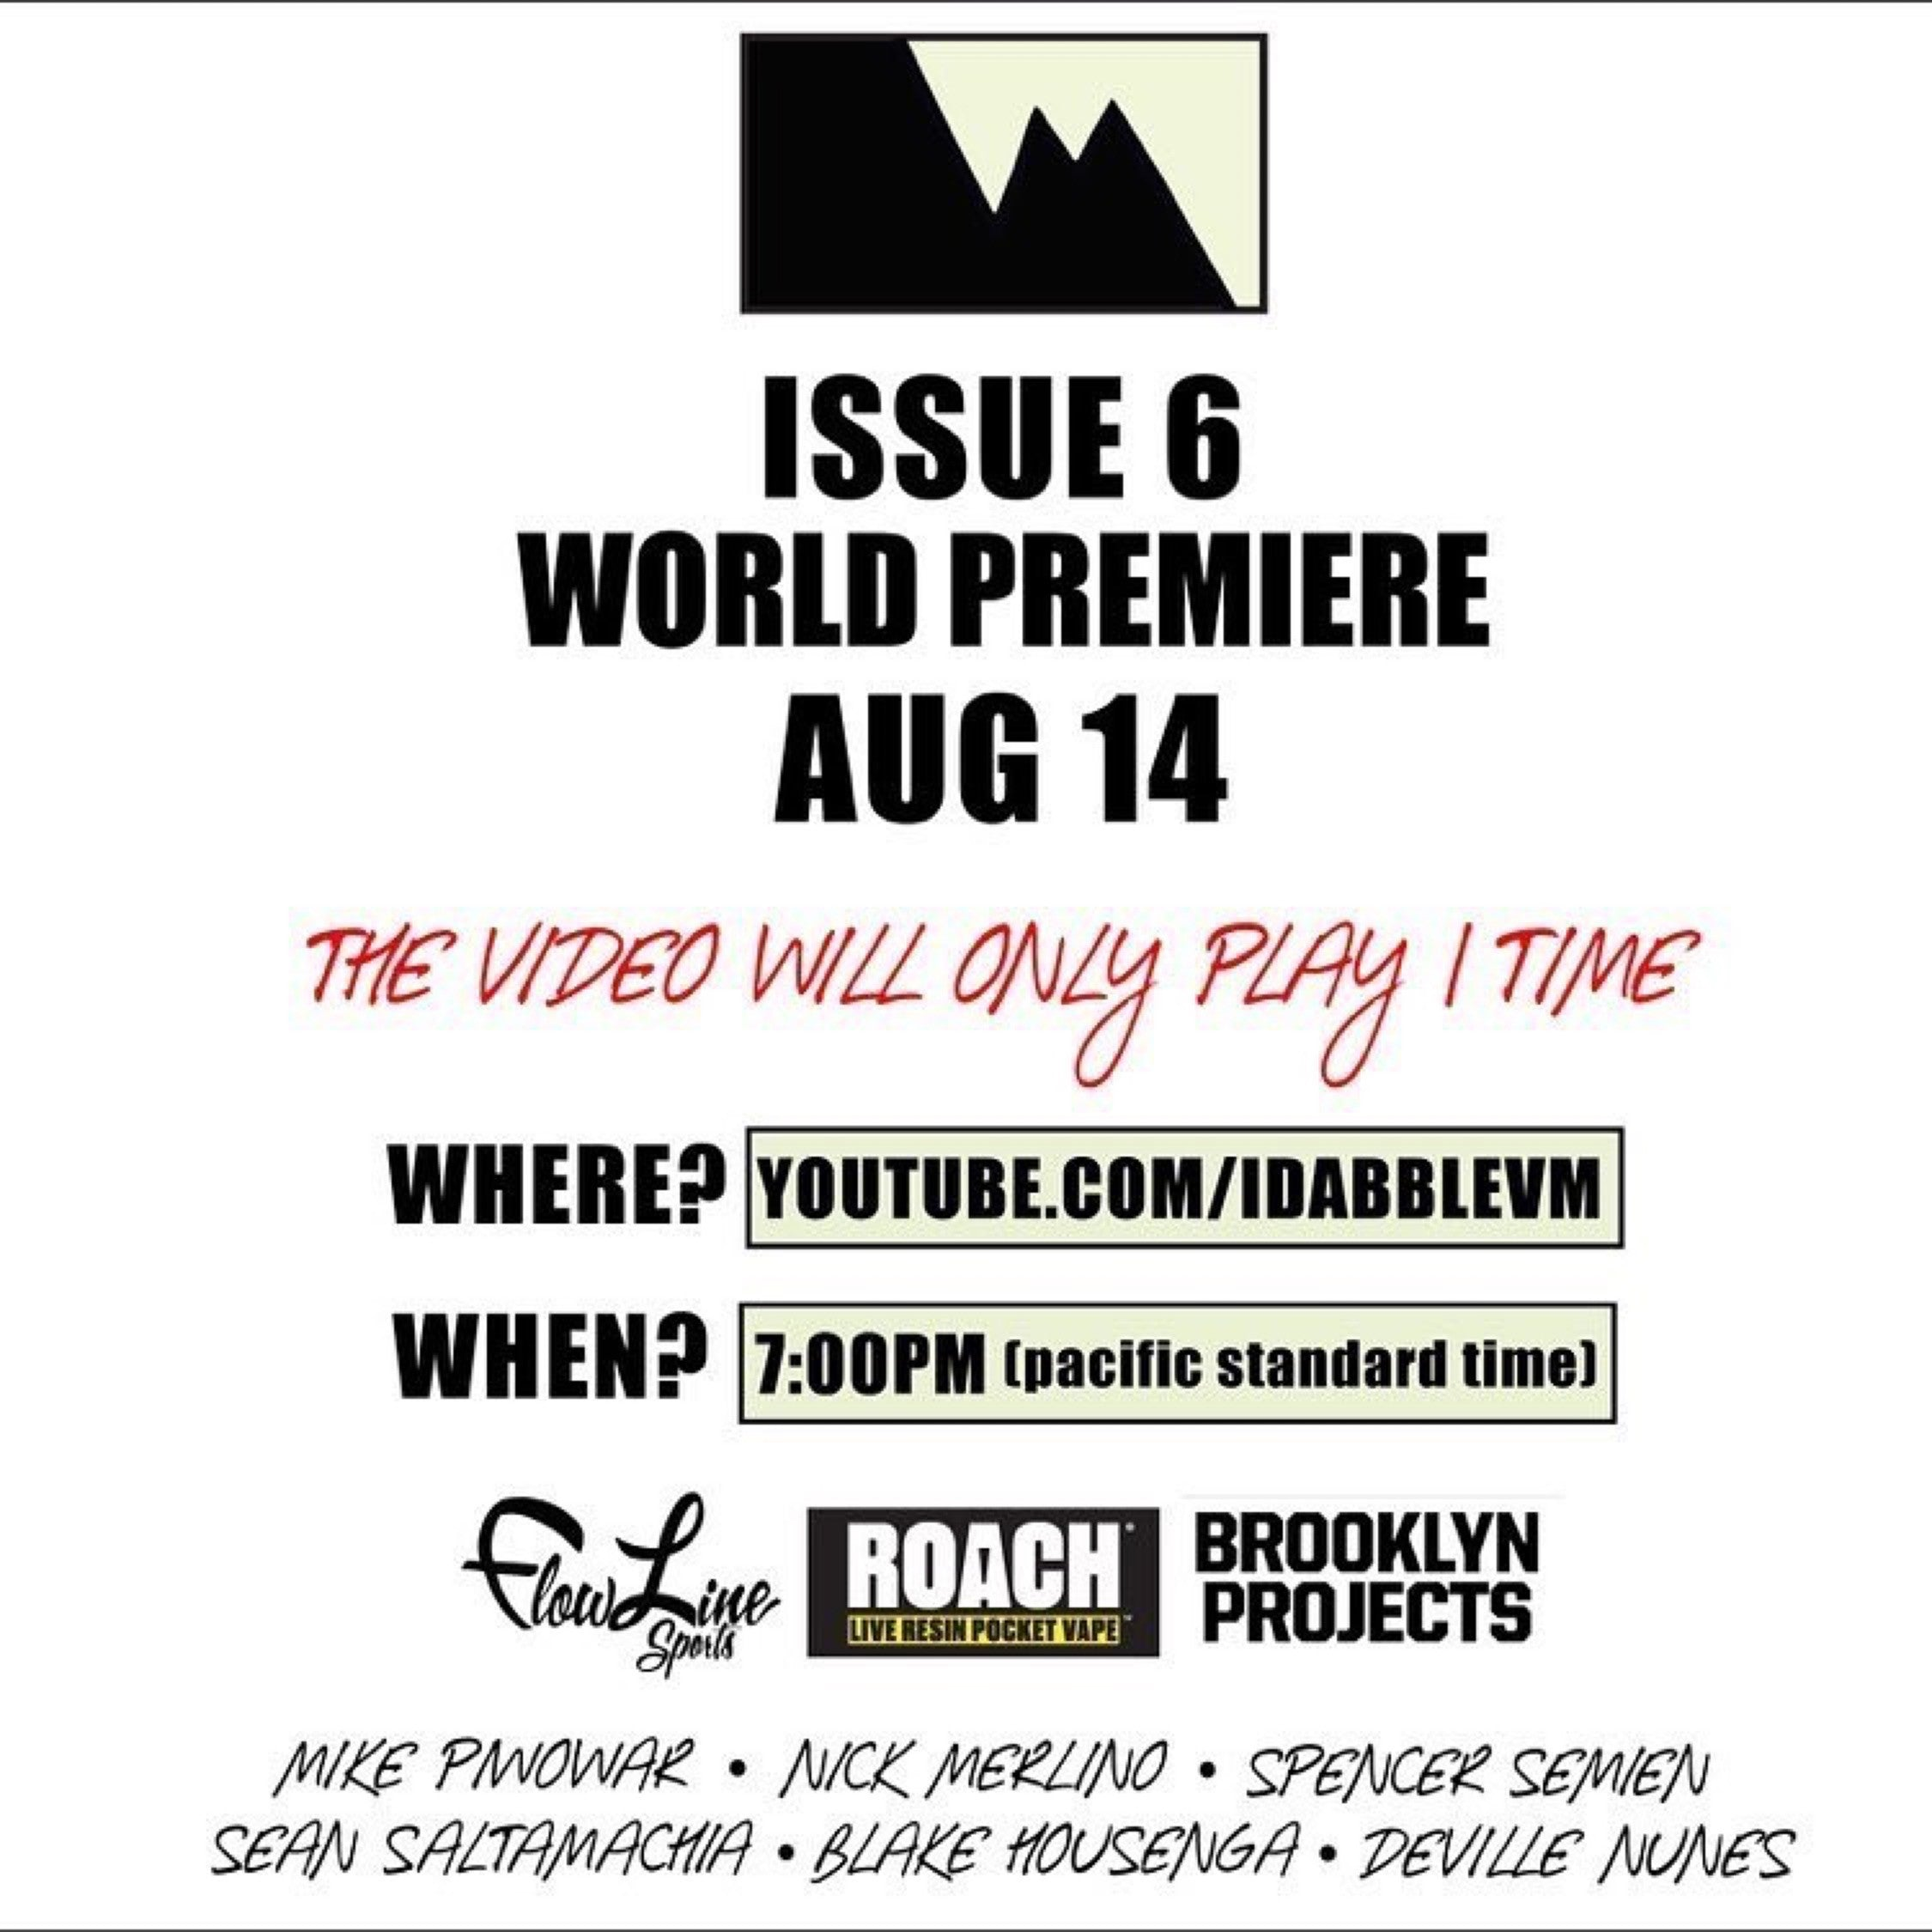 iDabble VM Issue 6 Premire Aug 14th on YouTube